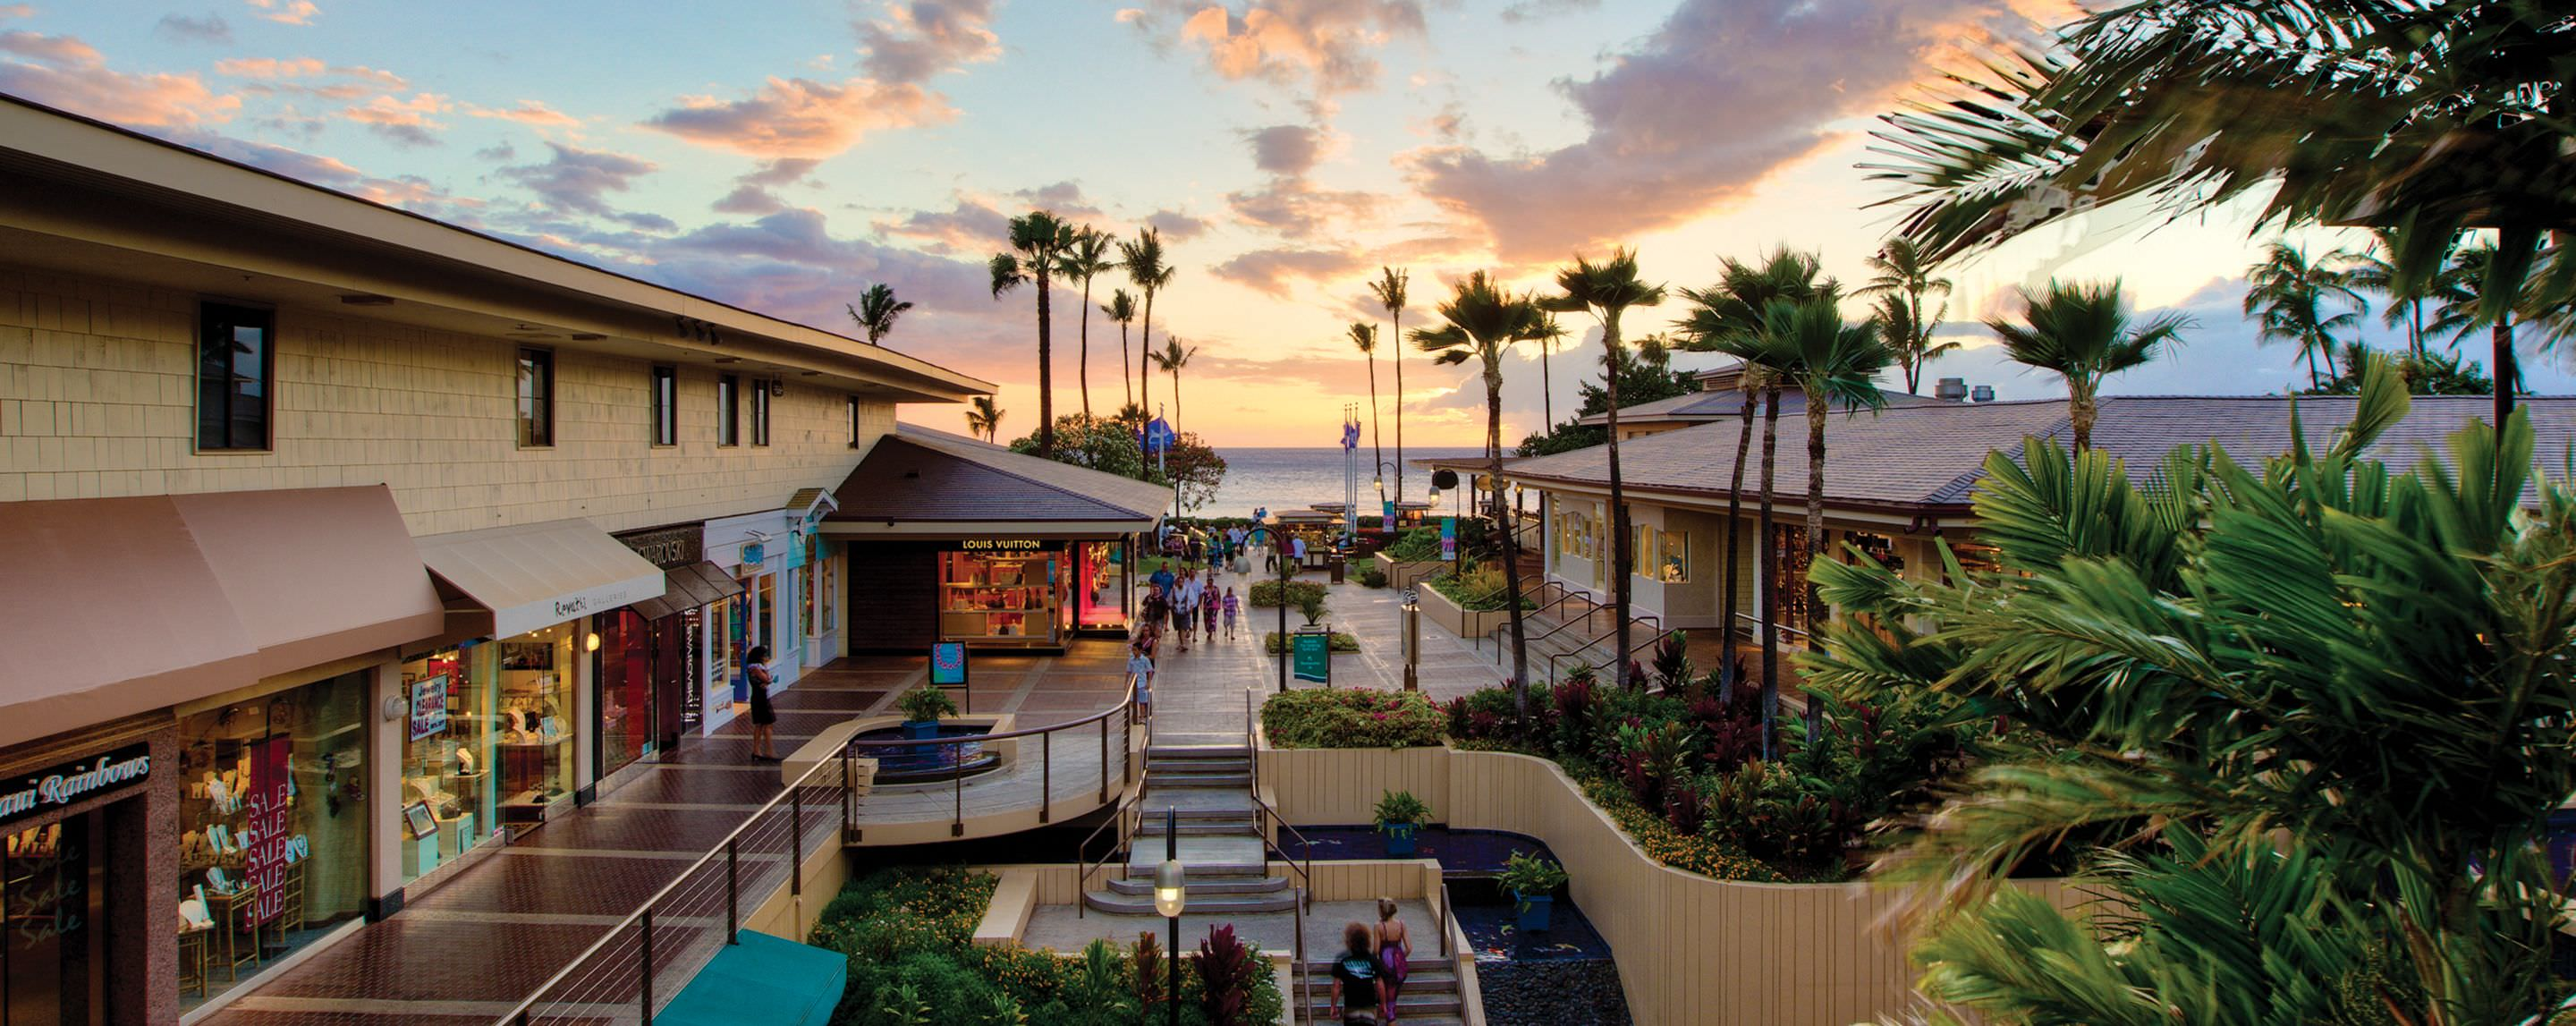 Guests can be seen strolling along the outside walkways and beautiful scenery of Whalers Village during dusk.